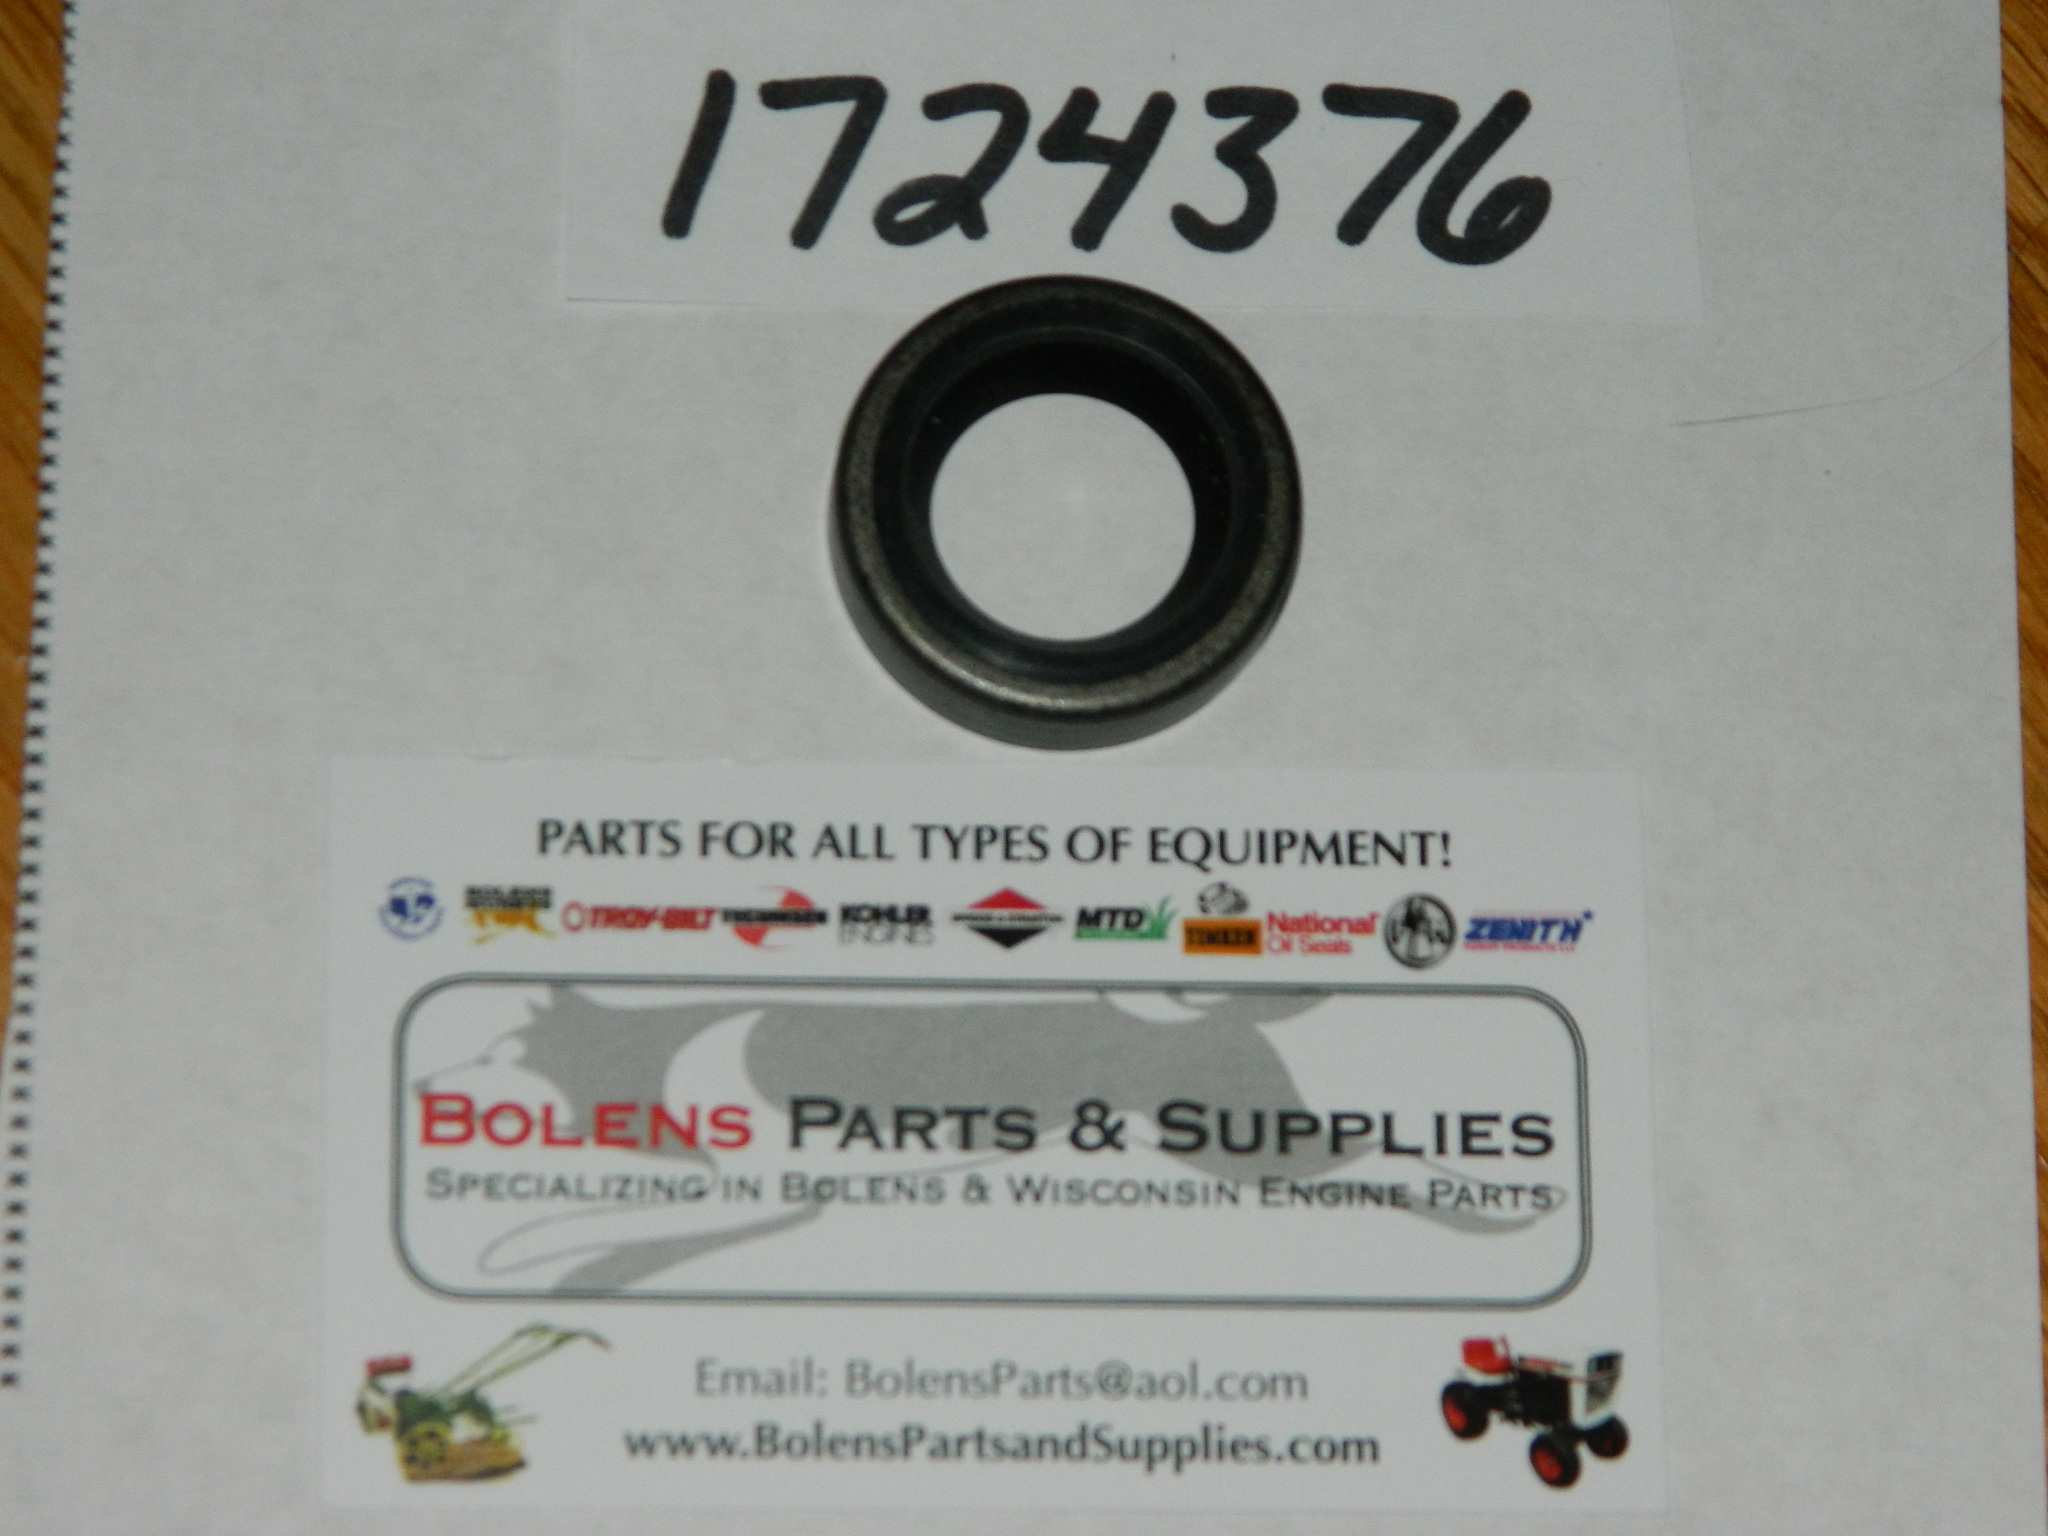 Bolens Eaton Transmission Input Oil Seal 1724376 172-4376 FREE SHIPPING!  Eaton 10 and others